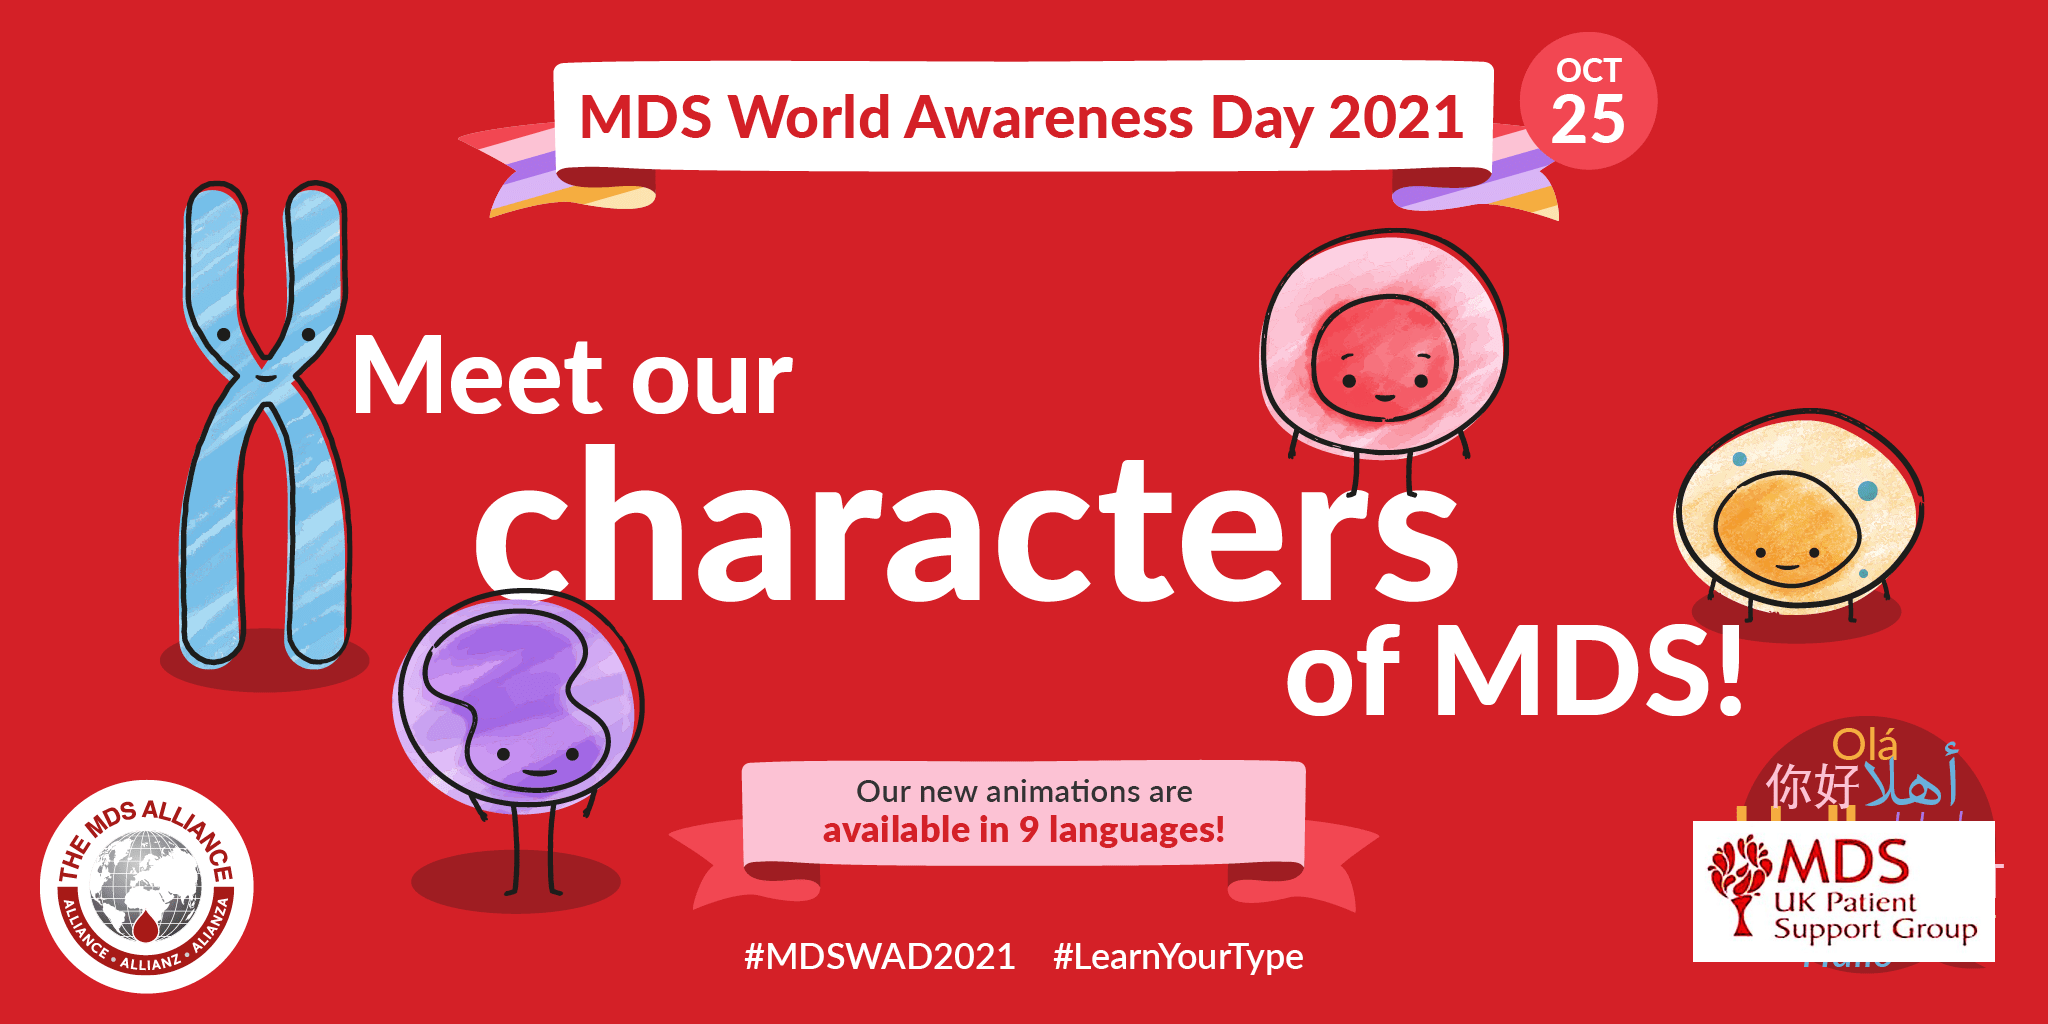 This Monday 25th of October 2021 is MDS World Awareness Day. Take Part!